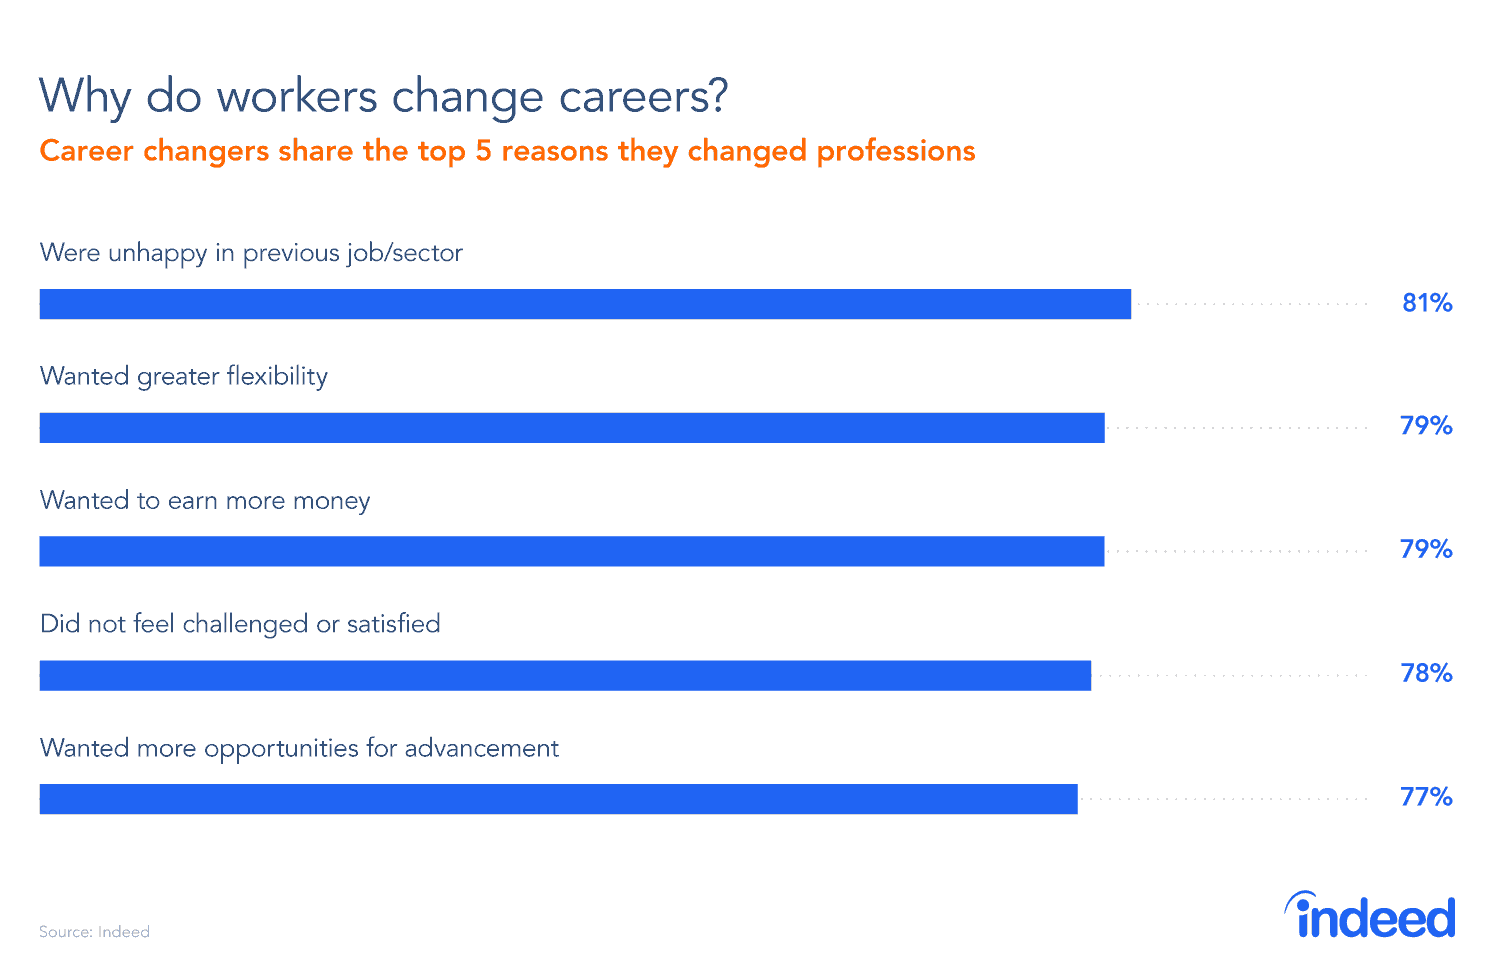 Bar graph showing why workers change careers